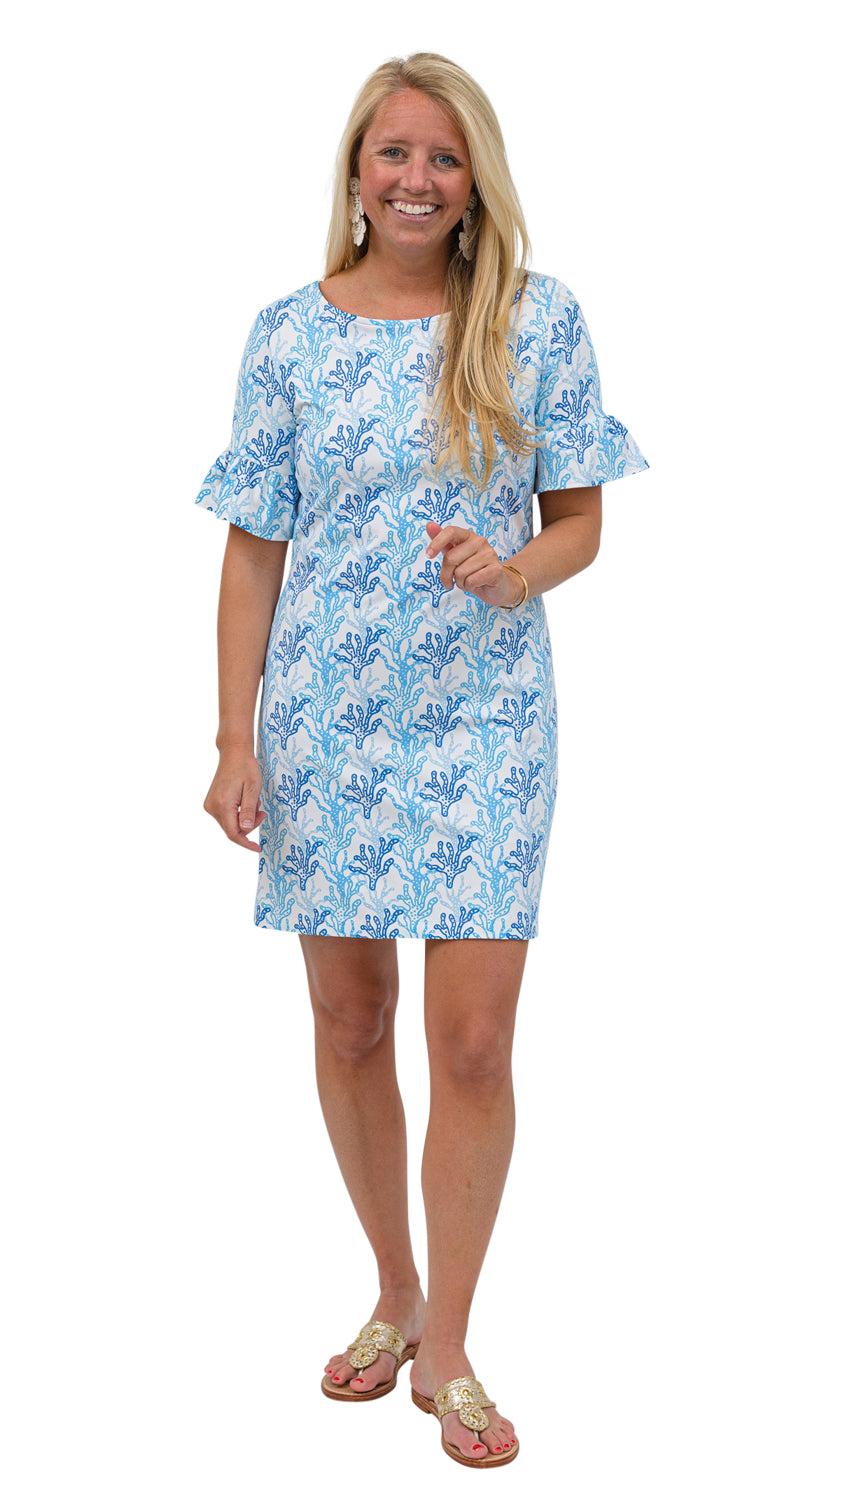 Dockside Dress - Blue/White Coral Reef